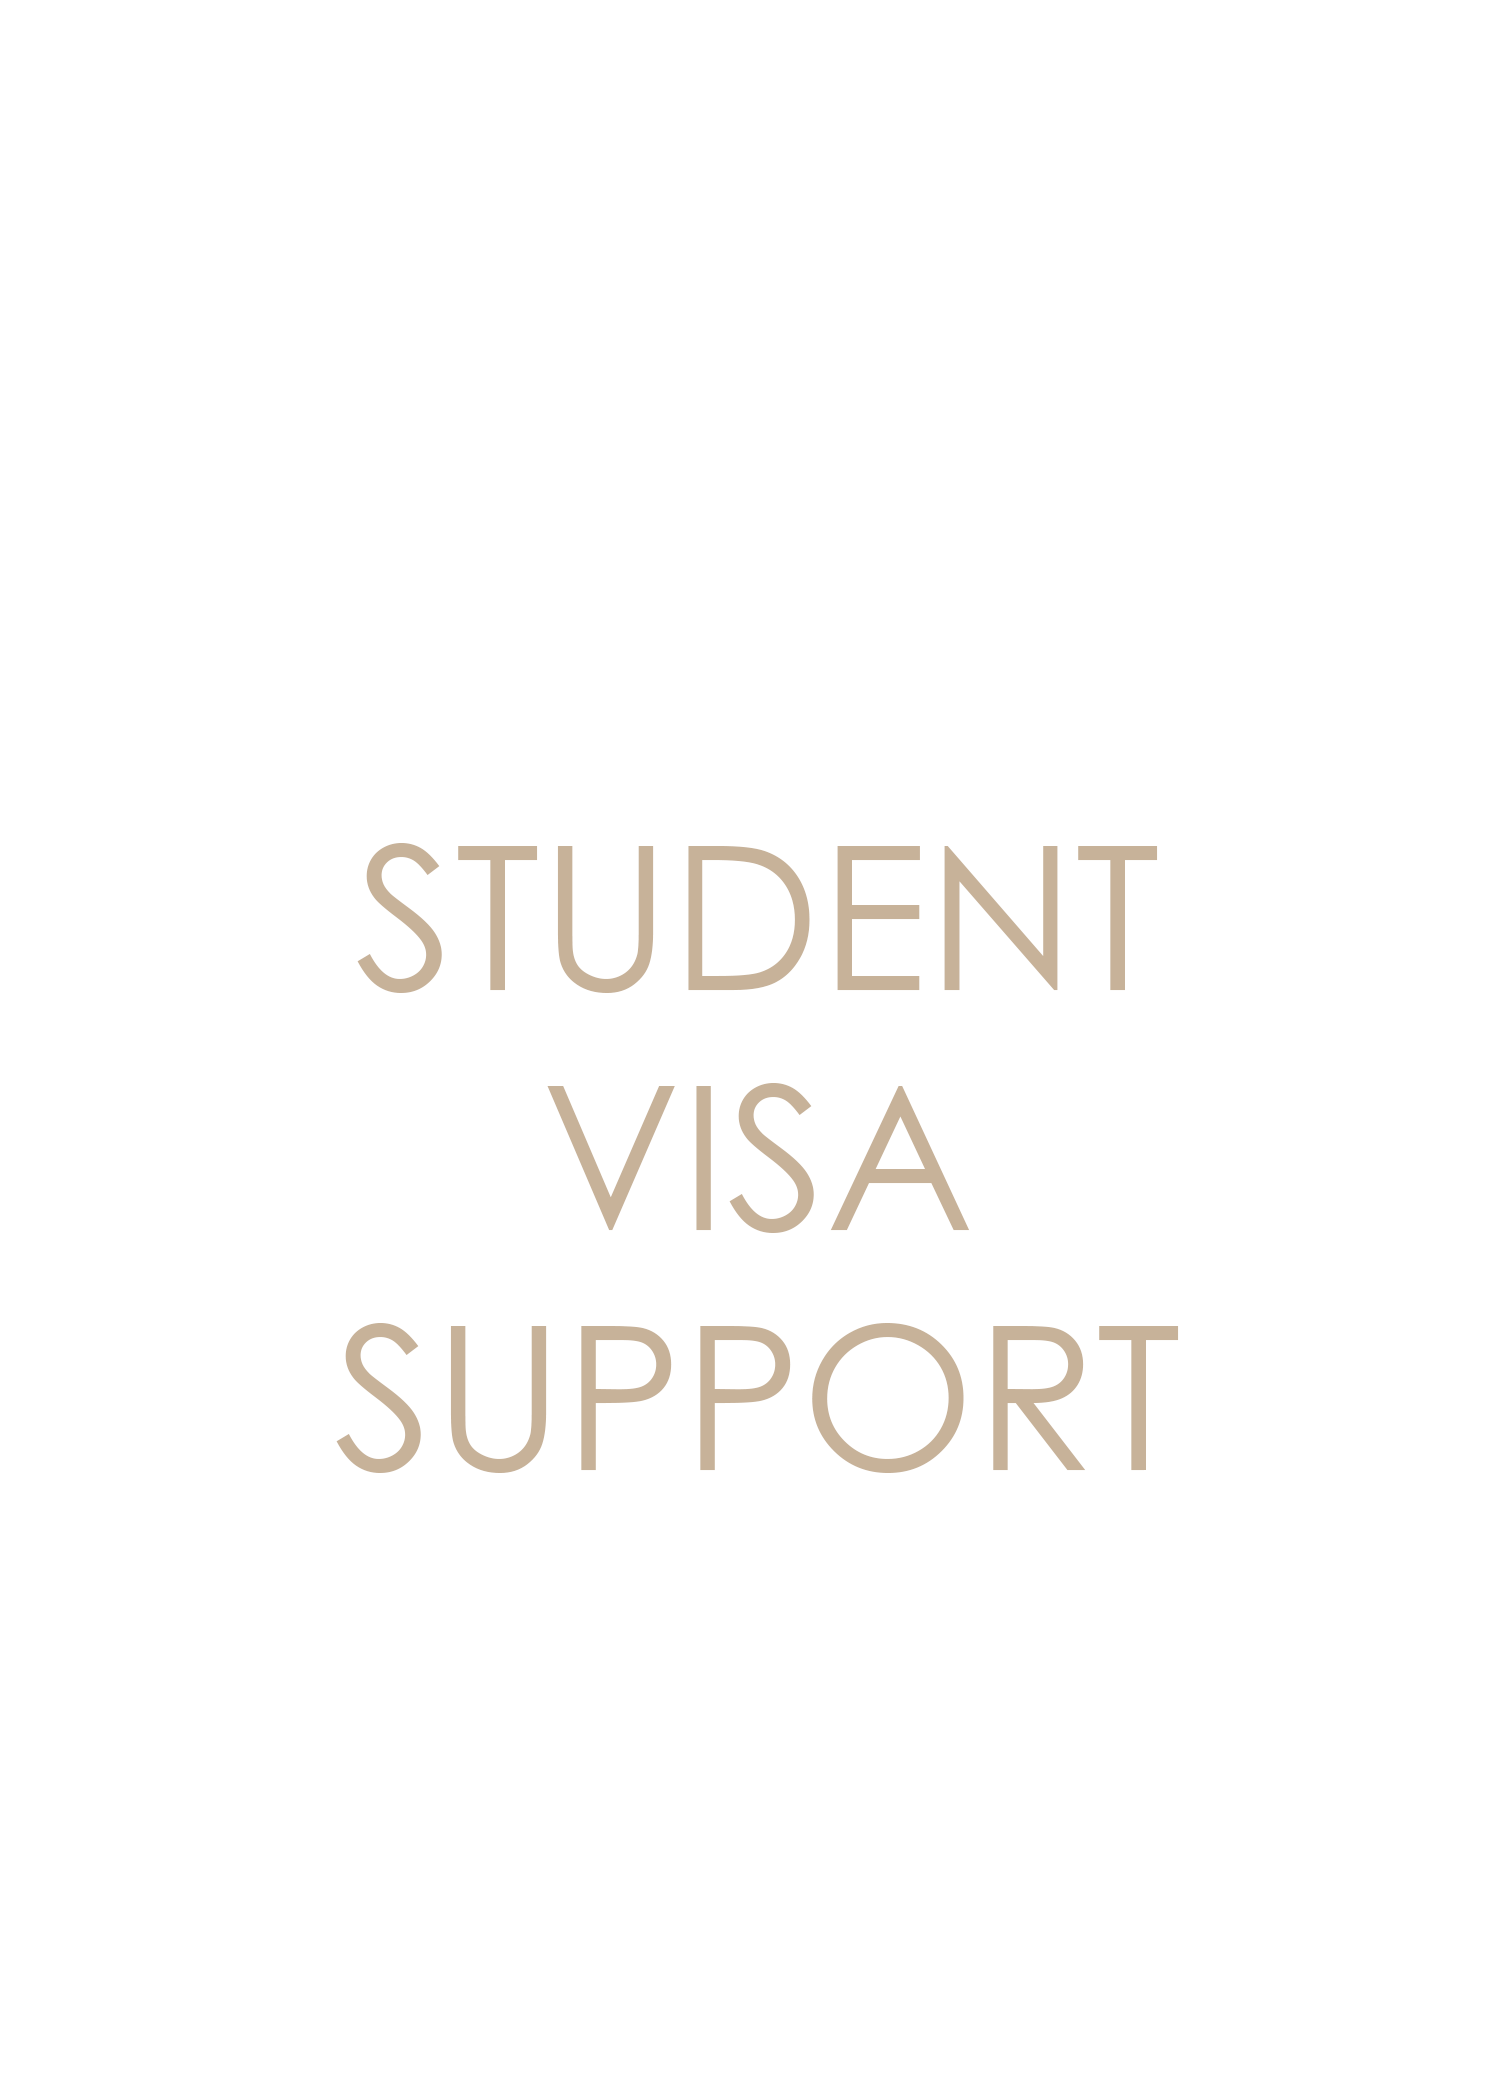 STUDENT VISA SUPPORT.png